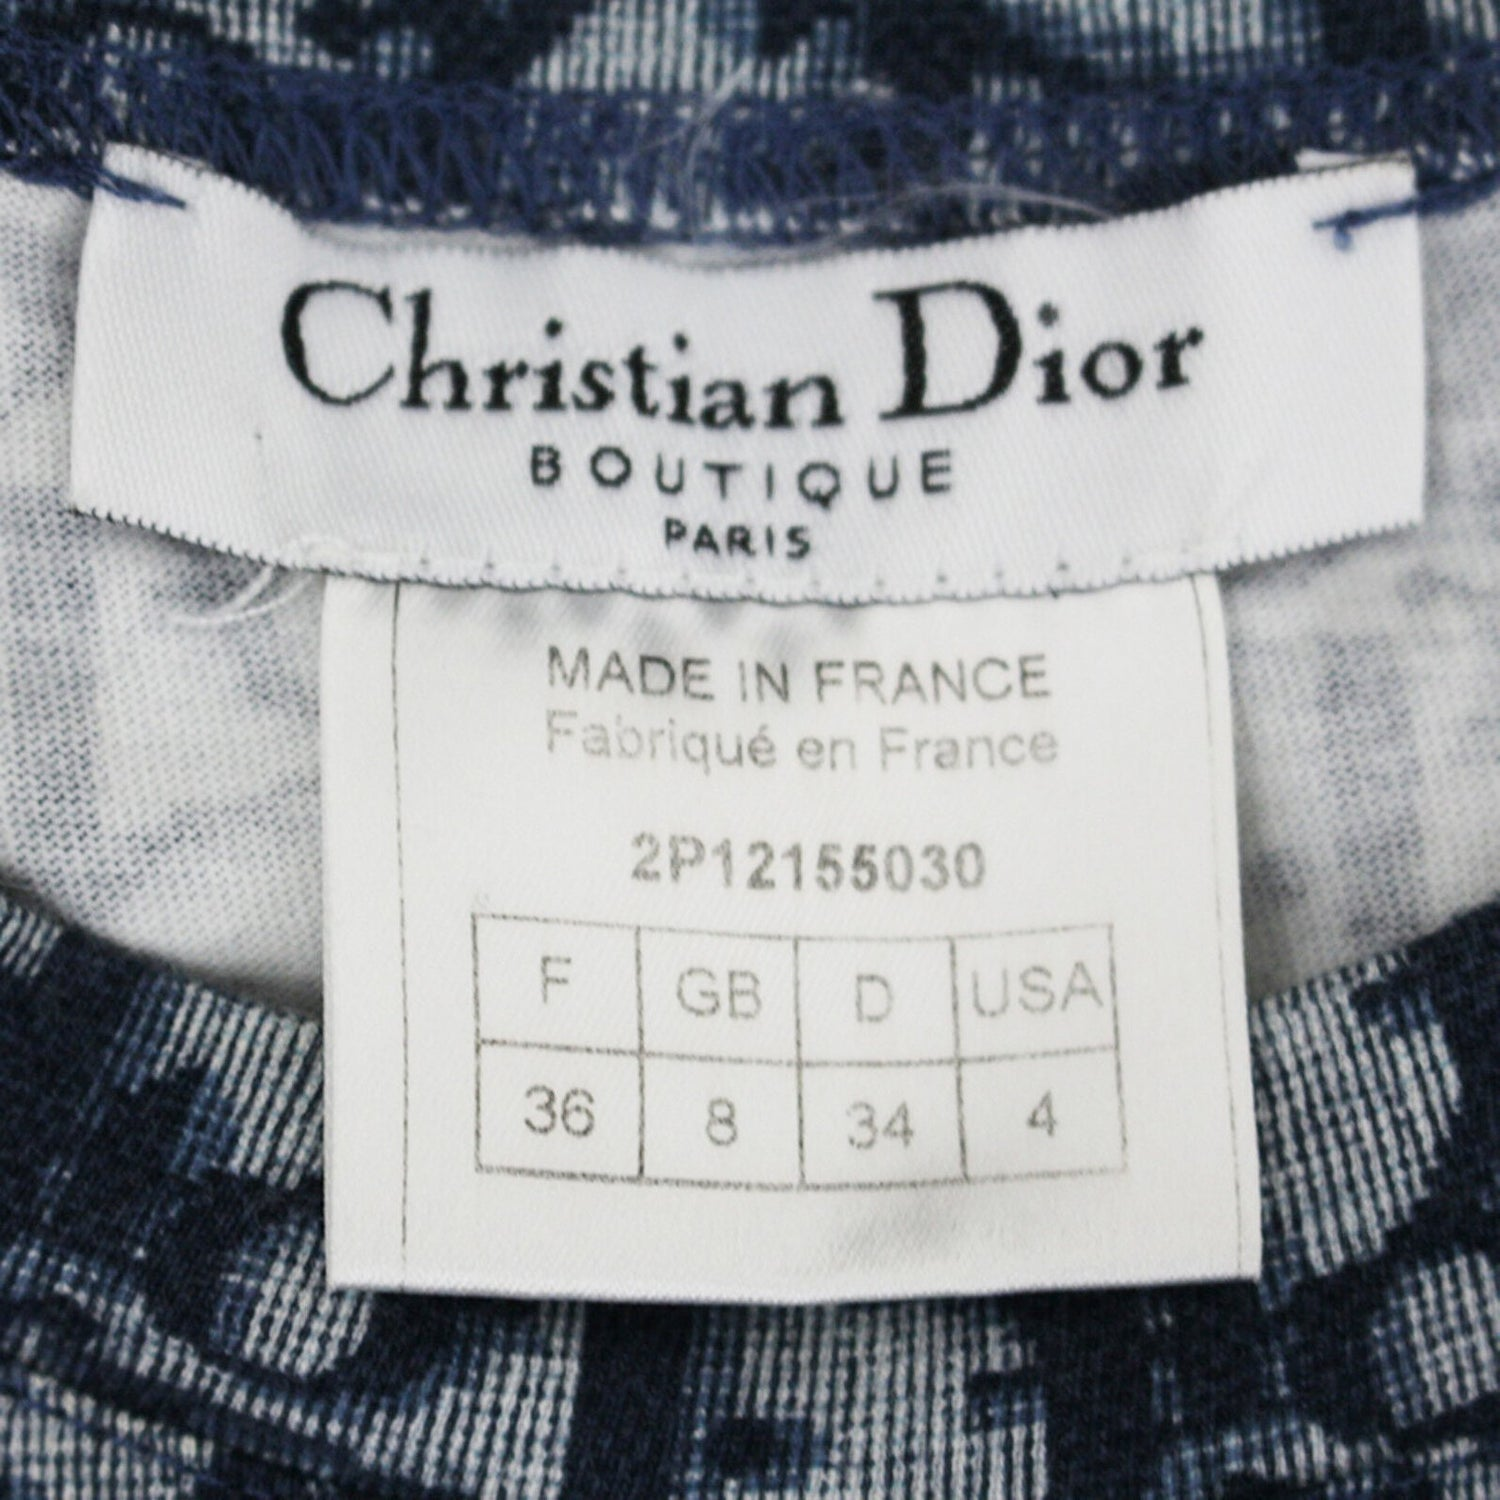 Fruit Vintage Christian Dior Navy Monogram logo trotter/oblique print tank top from the early 2000s designed by John Galliano, a Christian Dior collectors dream.